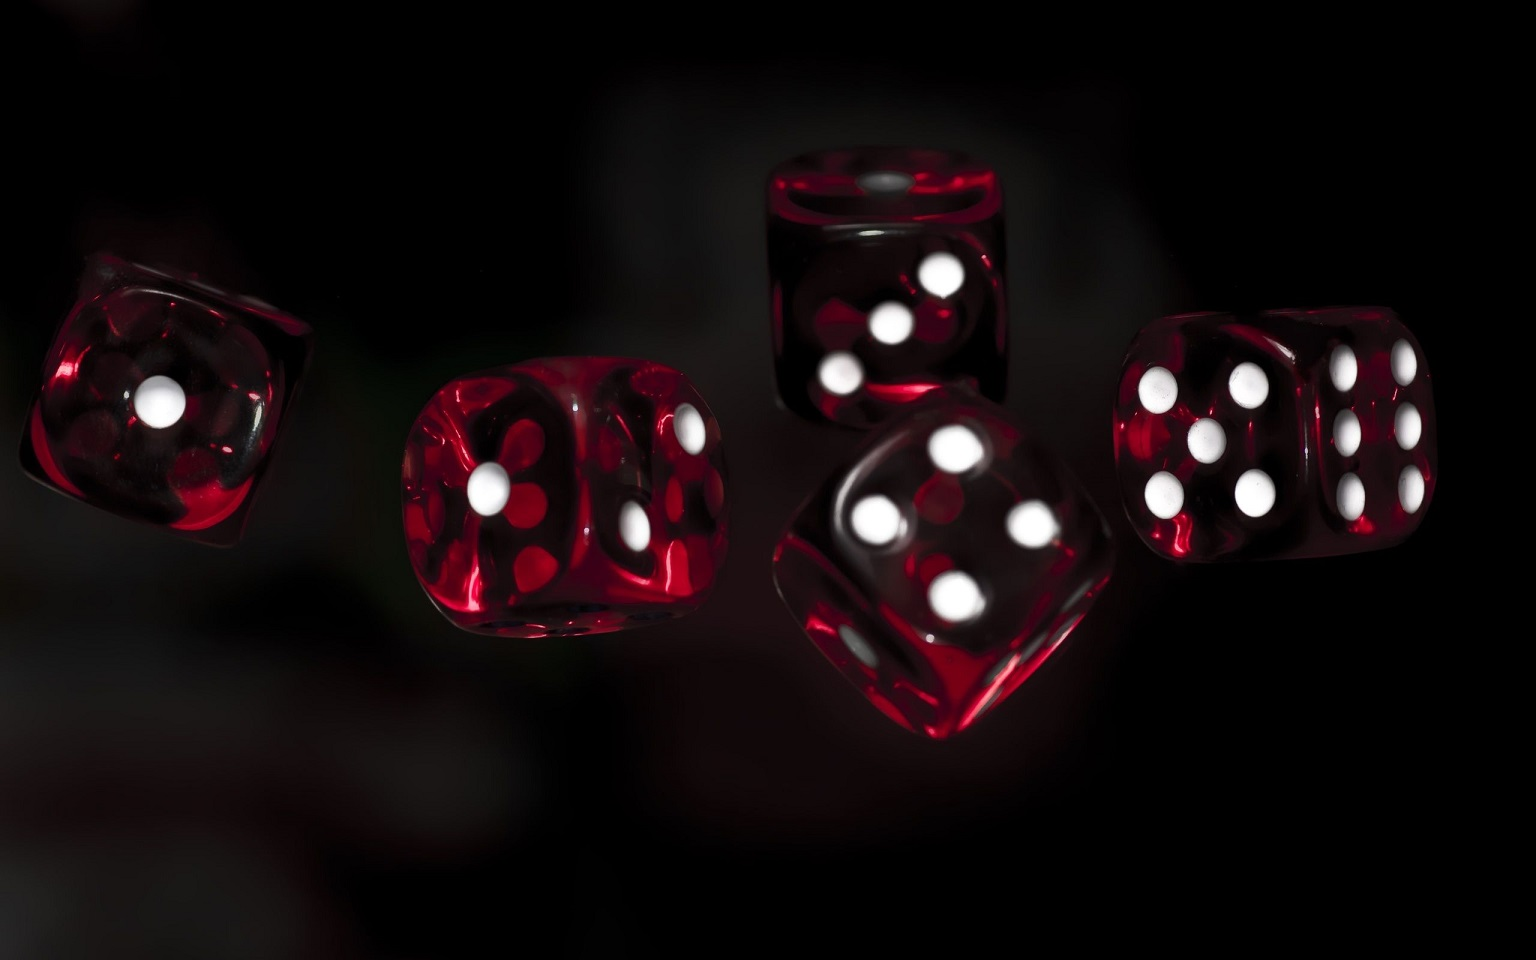 Want a Thriving Enterprise? Concentrate on Gambling!